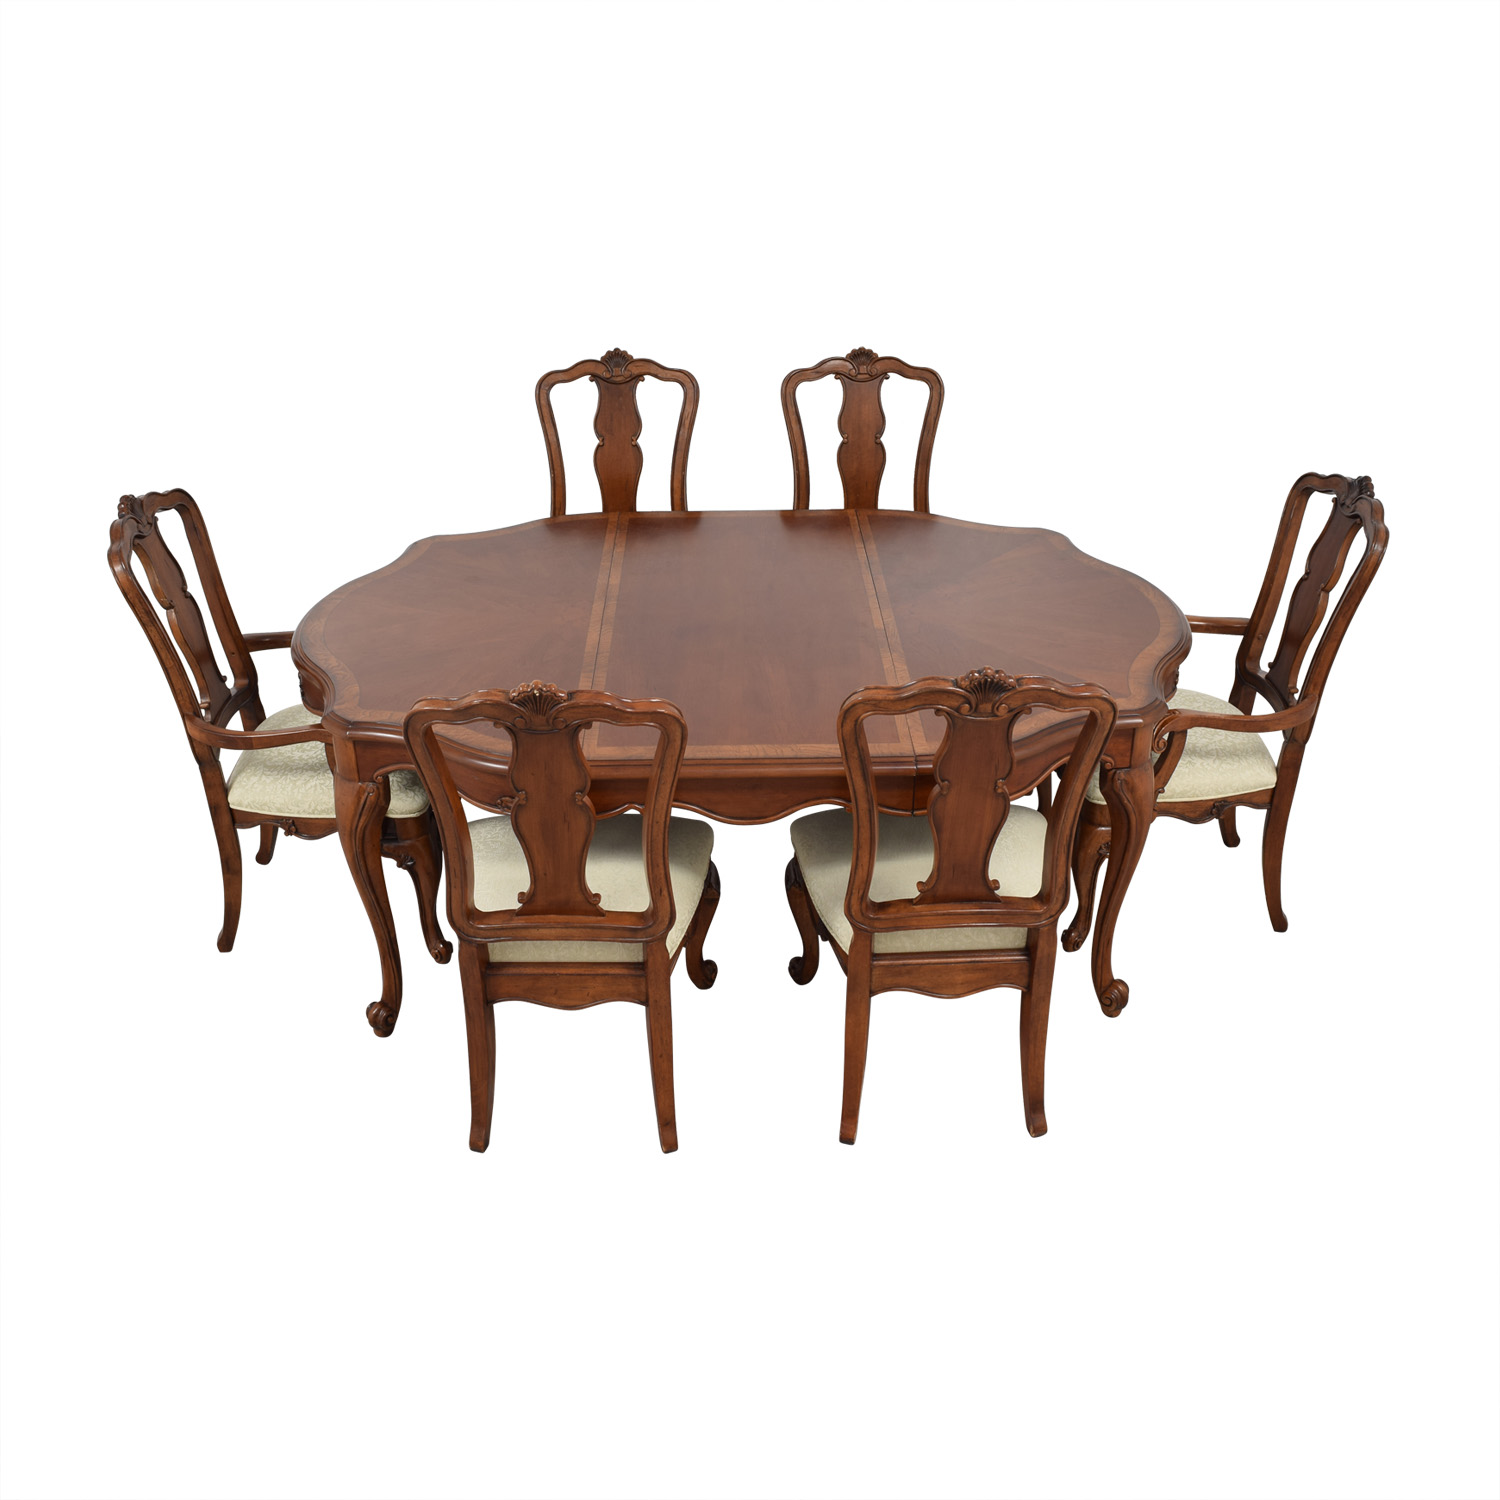 buy Macy's Dovetailed Wood Extendable Dining Set Macy's